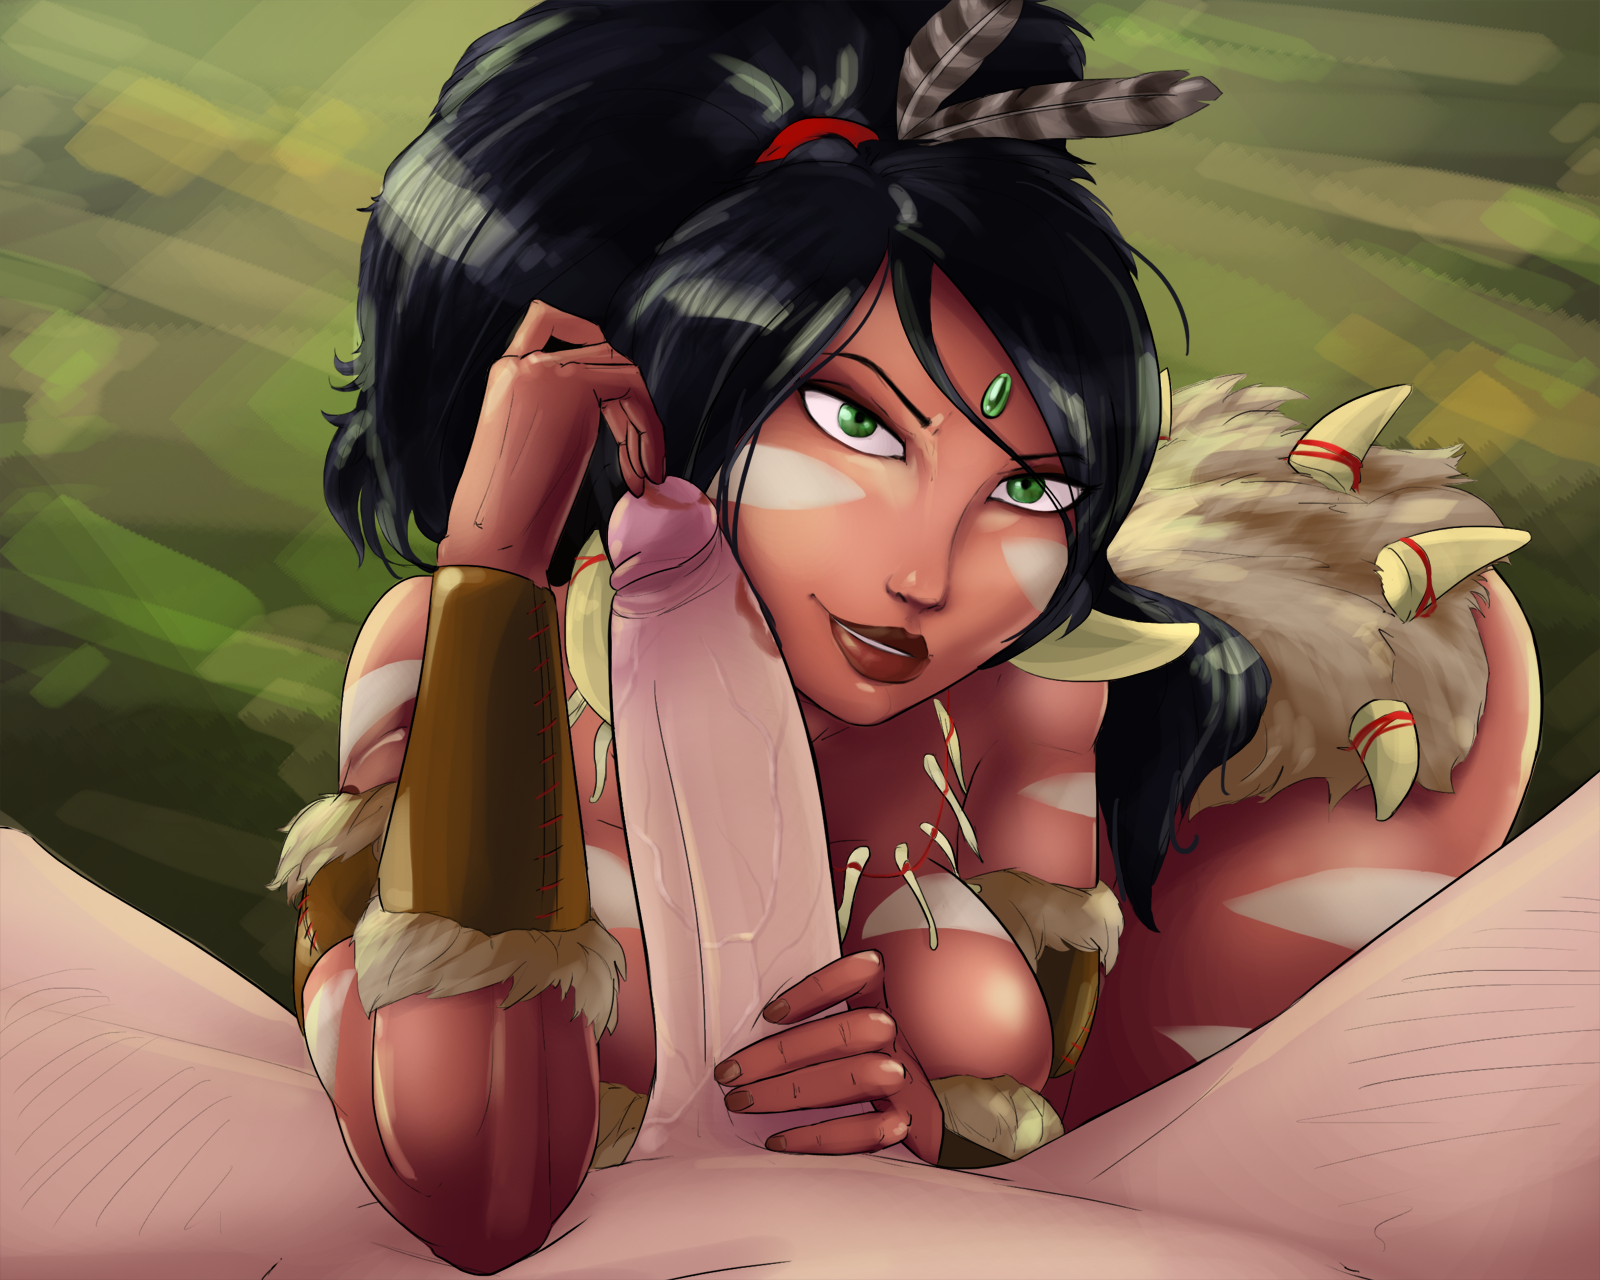 2255465 - League_of_Legends Magnetus Nidalee